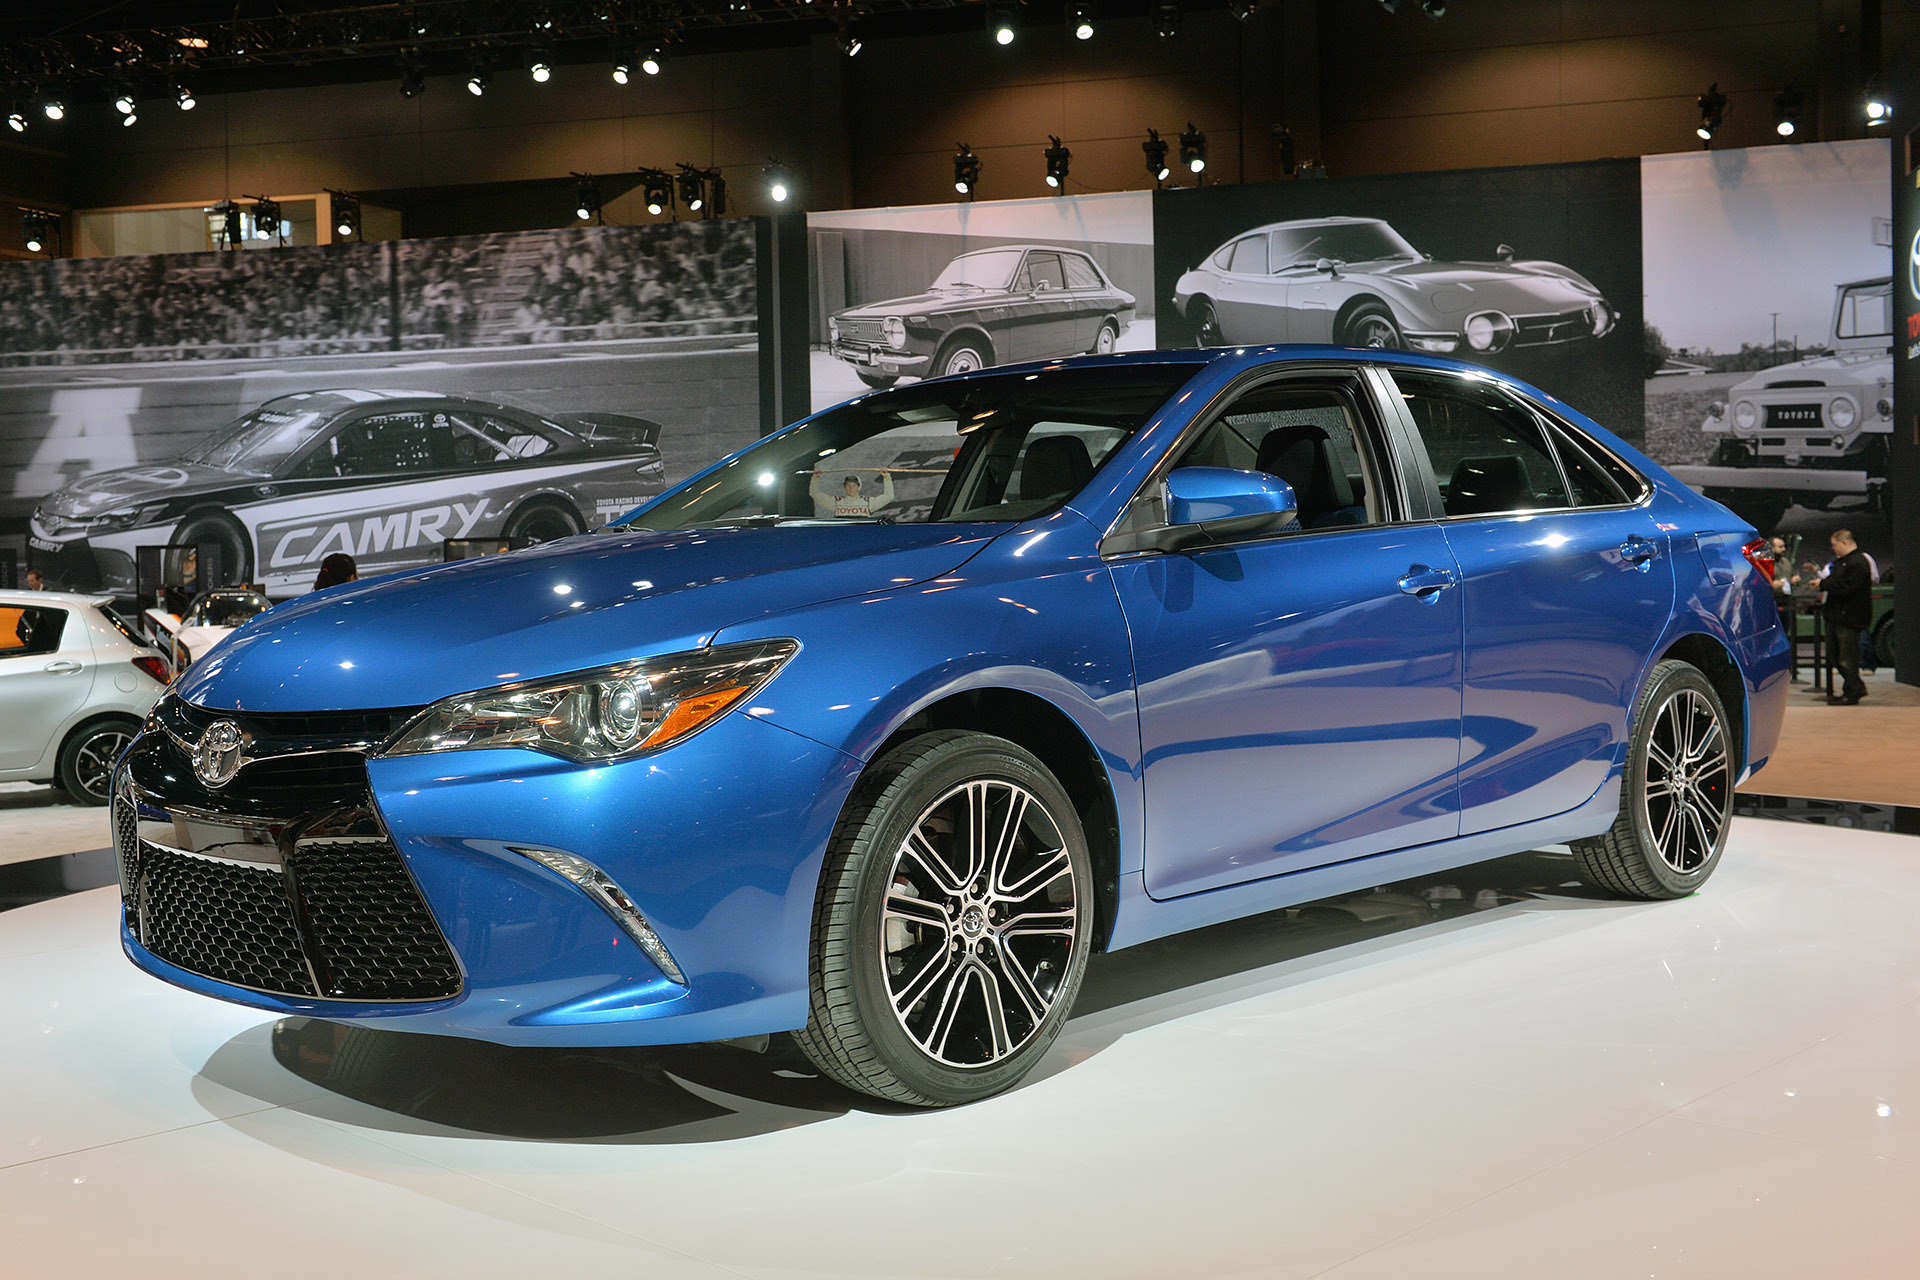 2016 toyota camry special edition chicago 2015 photo. Black Bedroom Furniture Sets. Home Design Ideas